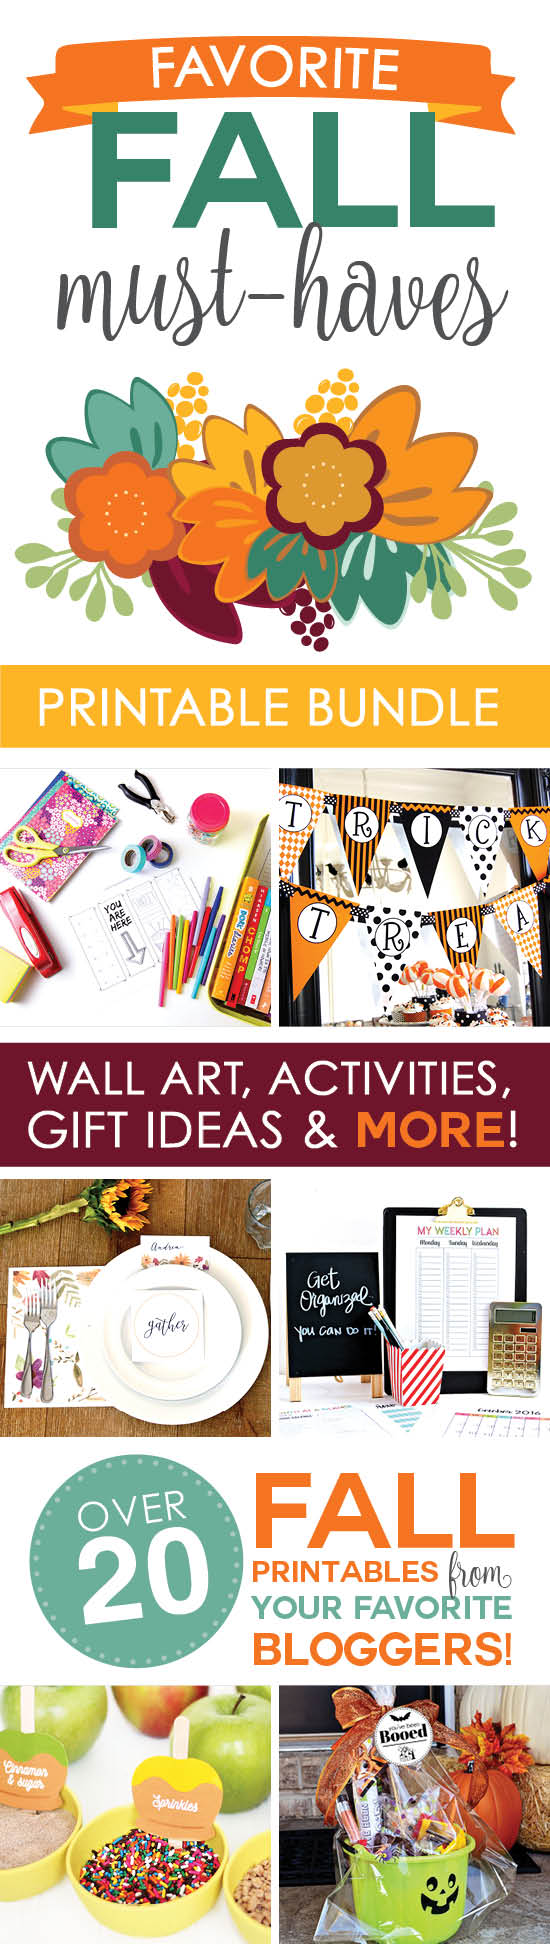 fall-must-haves-bundle-printables